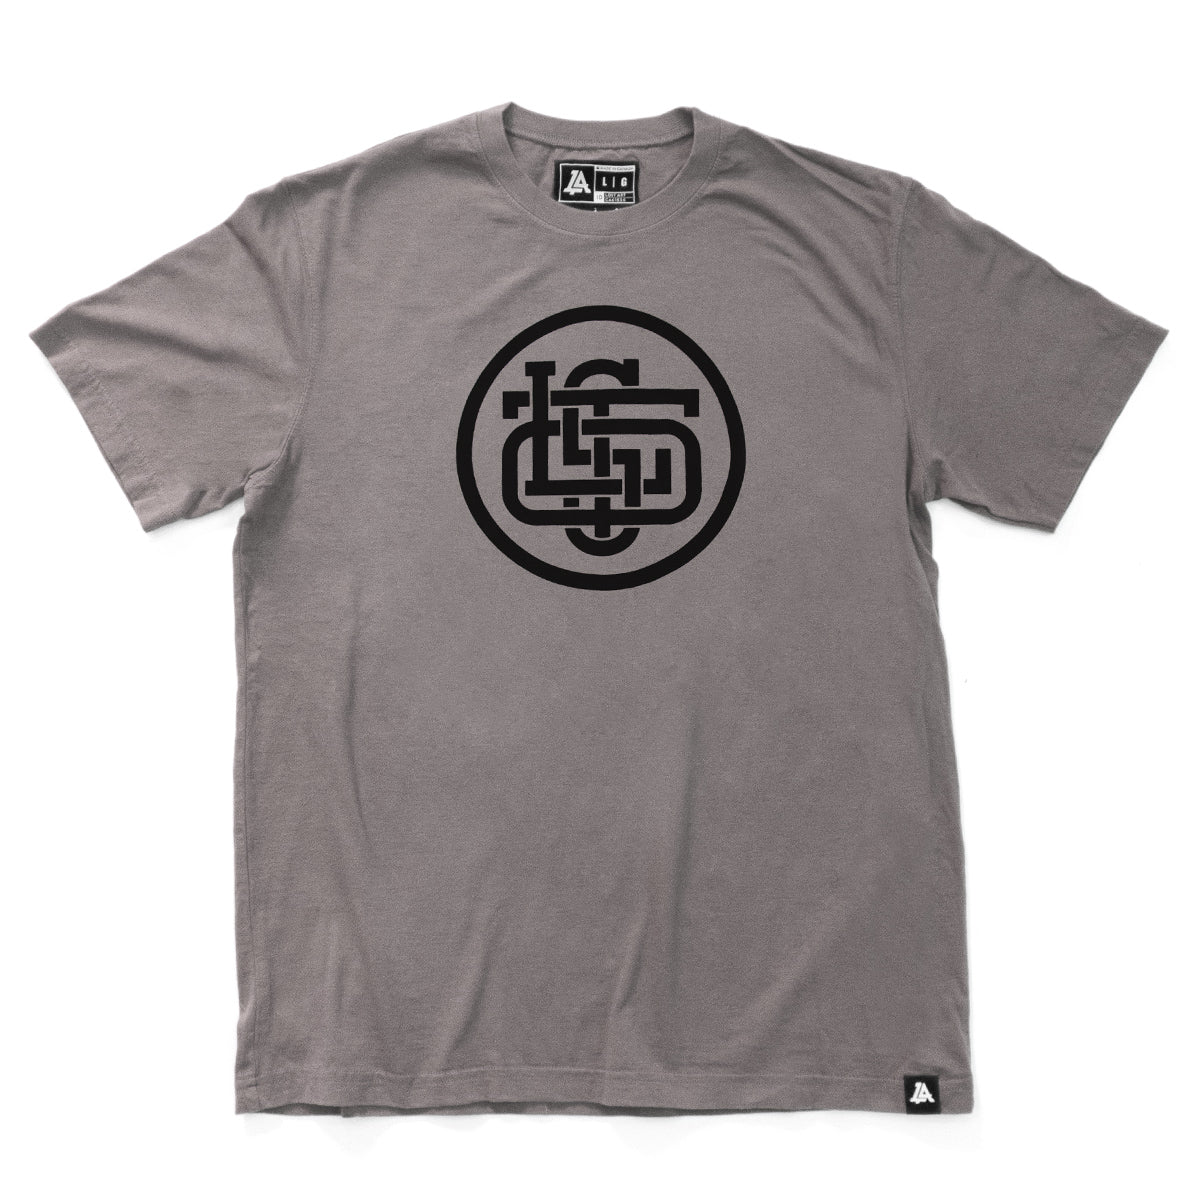 Lost Art Canada - black on slate grey monogram logo tee front view